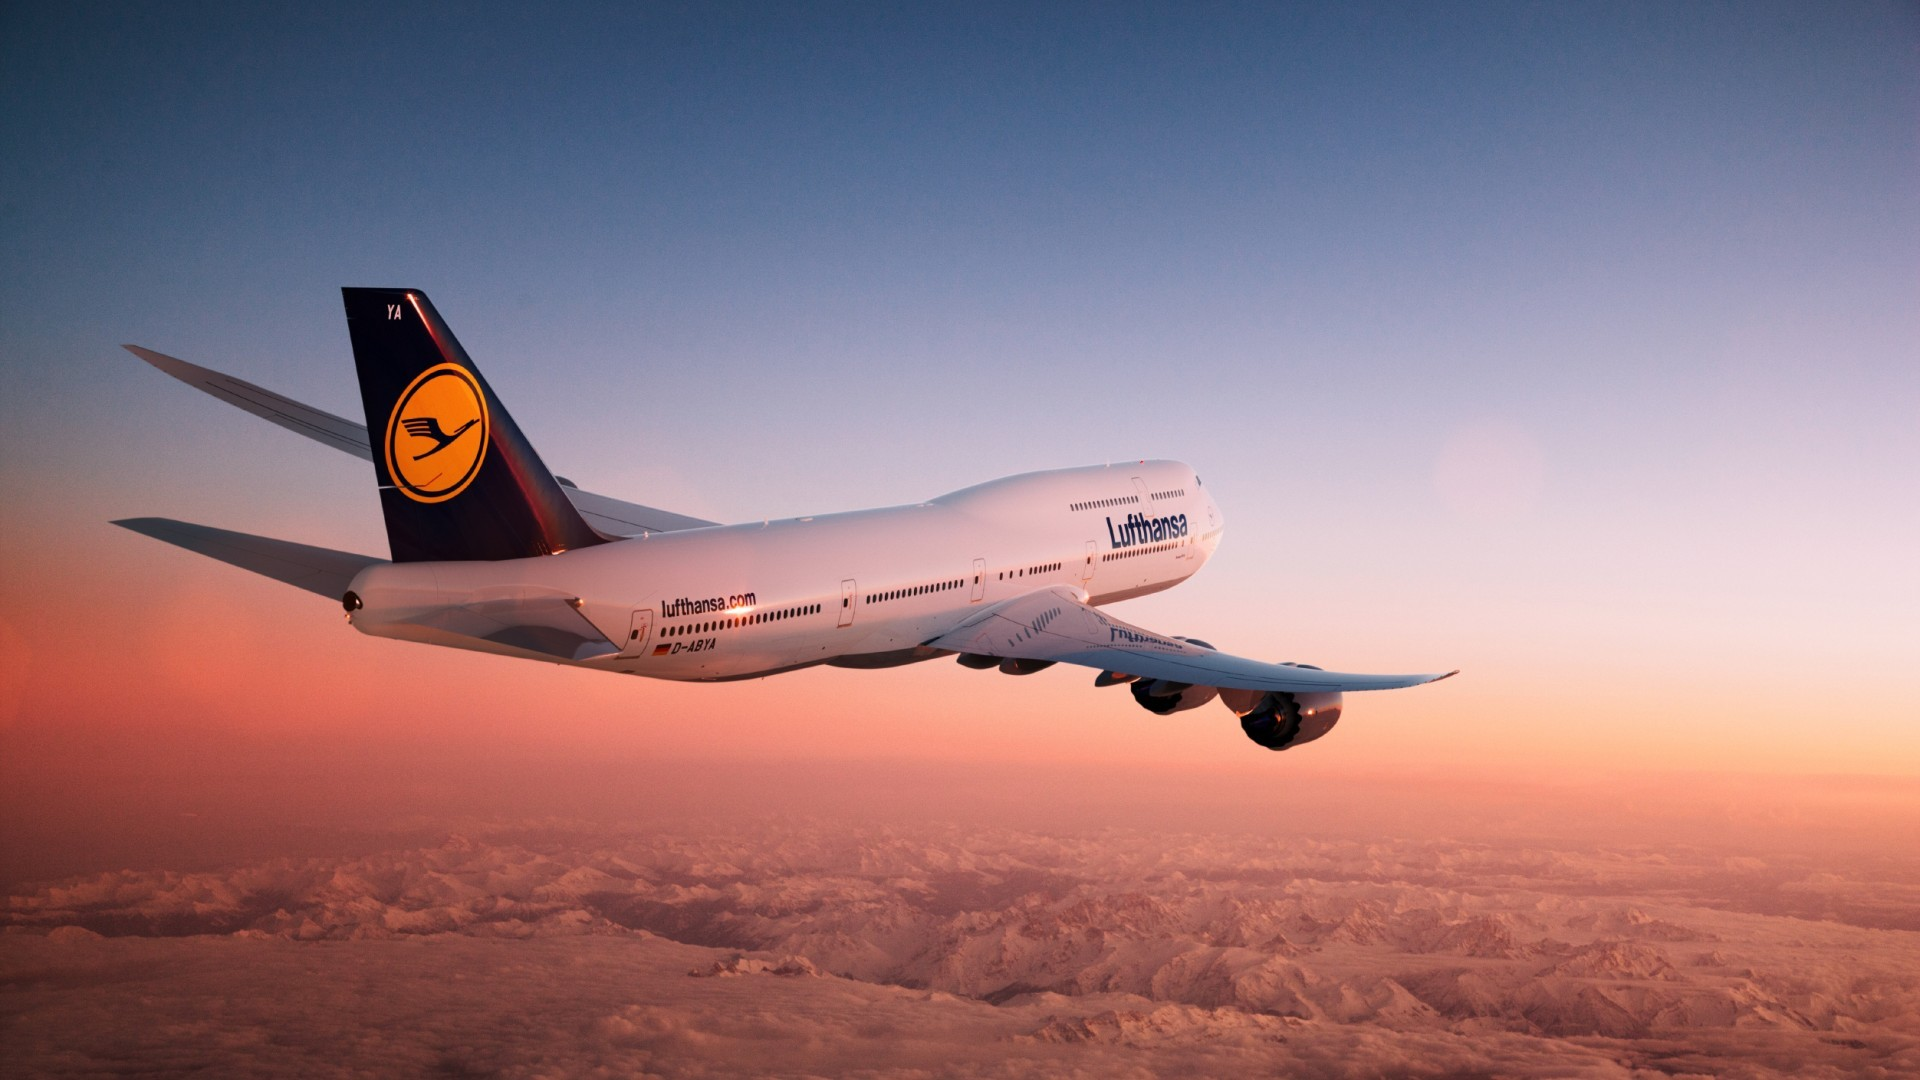 1920x1080 lufthansa boeing 7478i at sunset desktop pc and